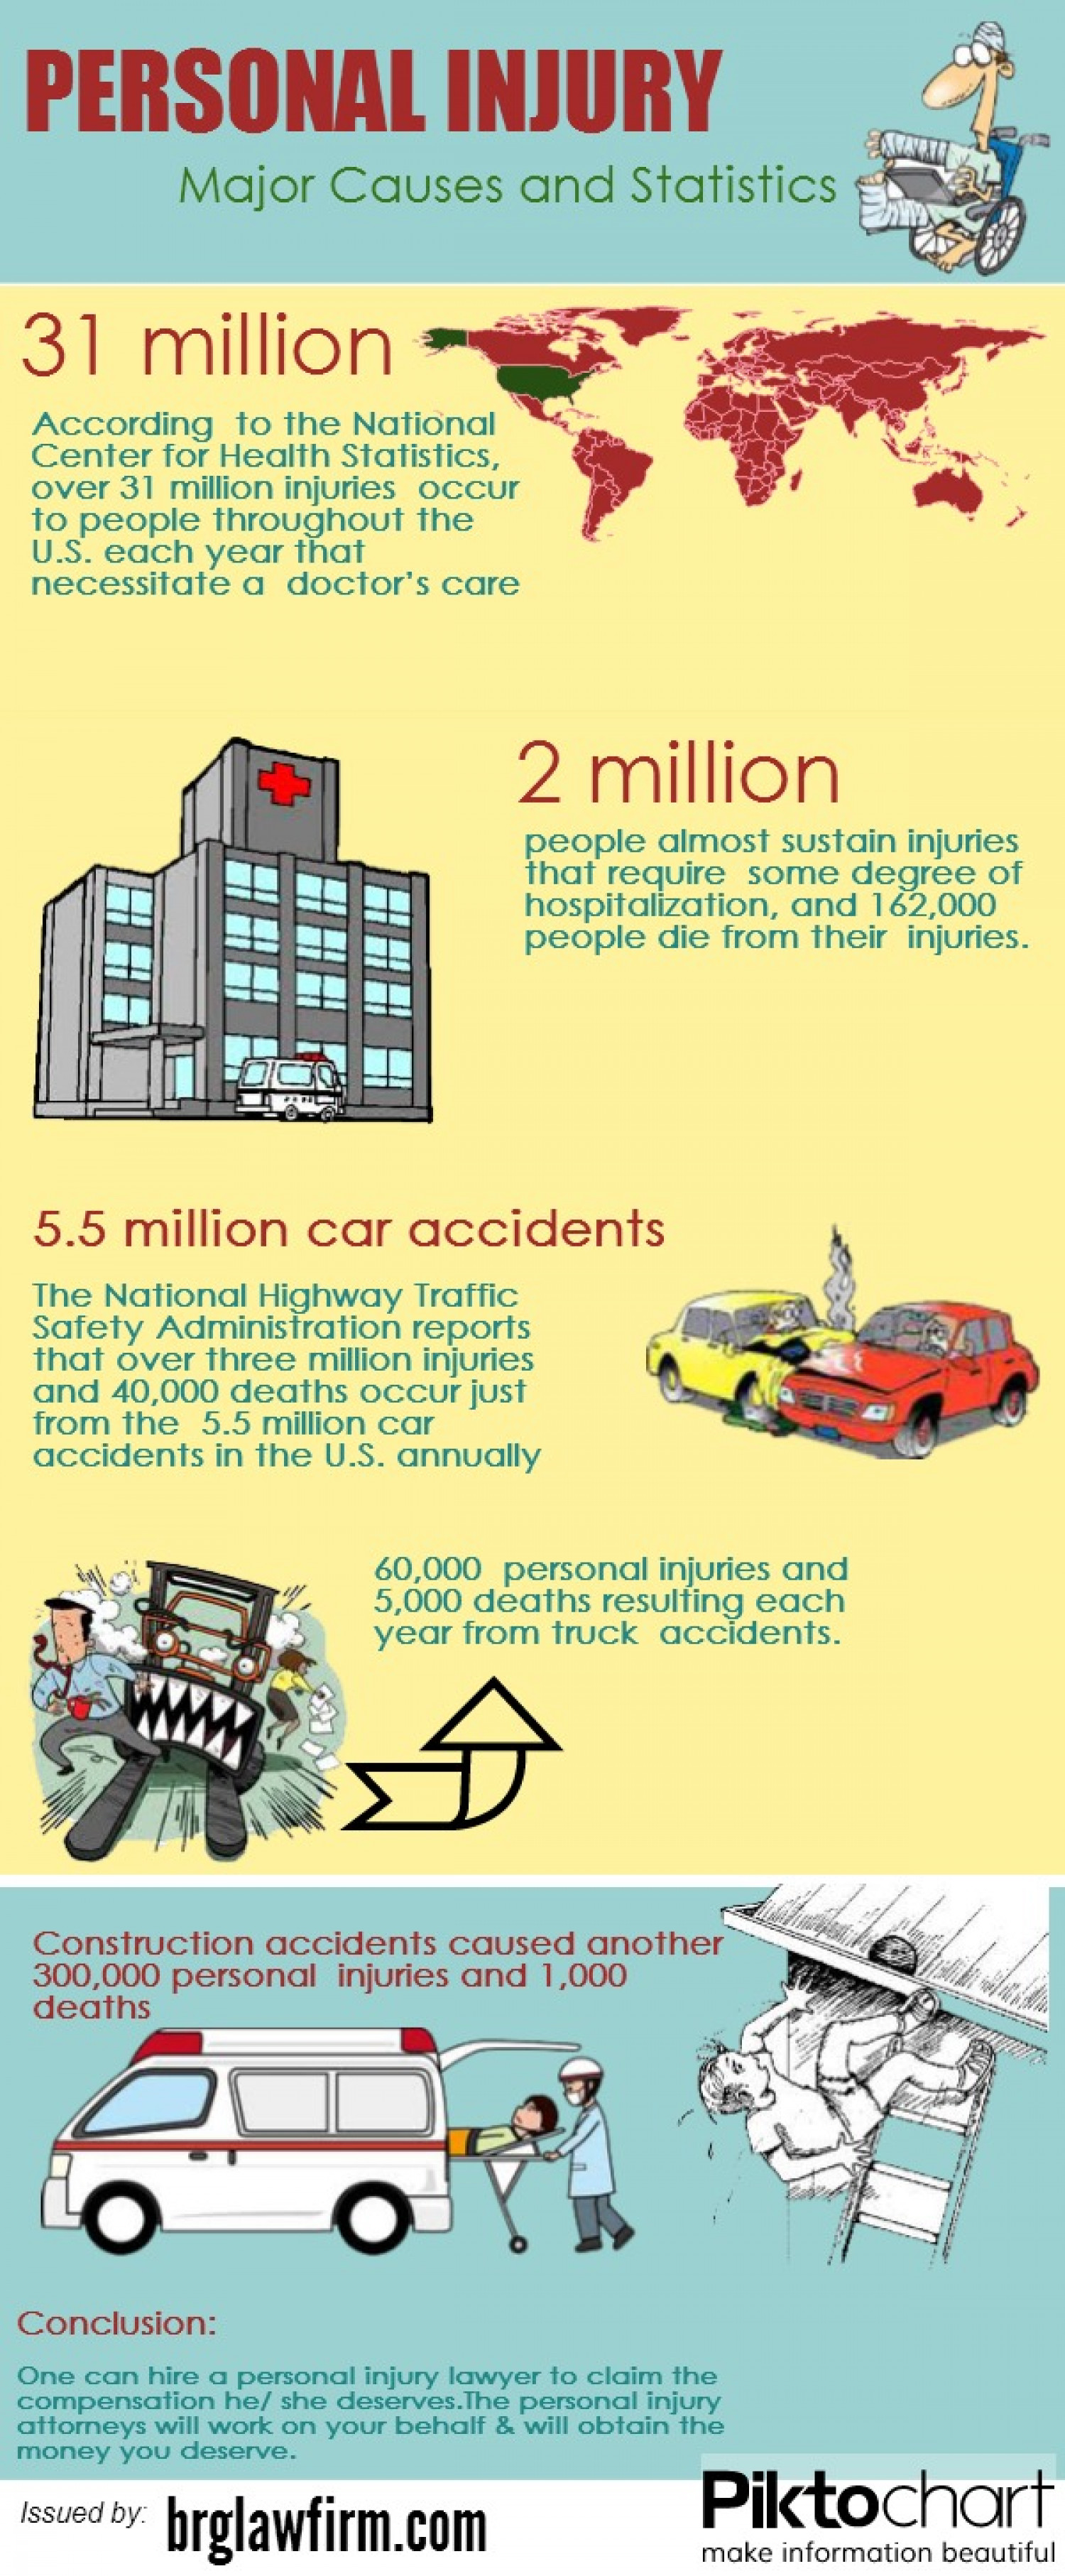 Personal Injury Majore Causes & Statistics Infographic